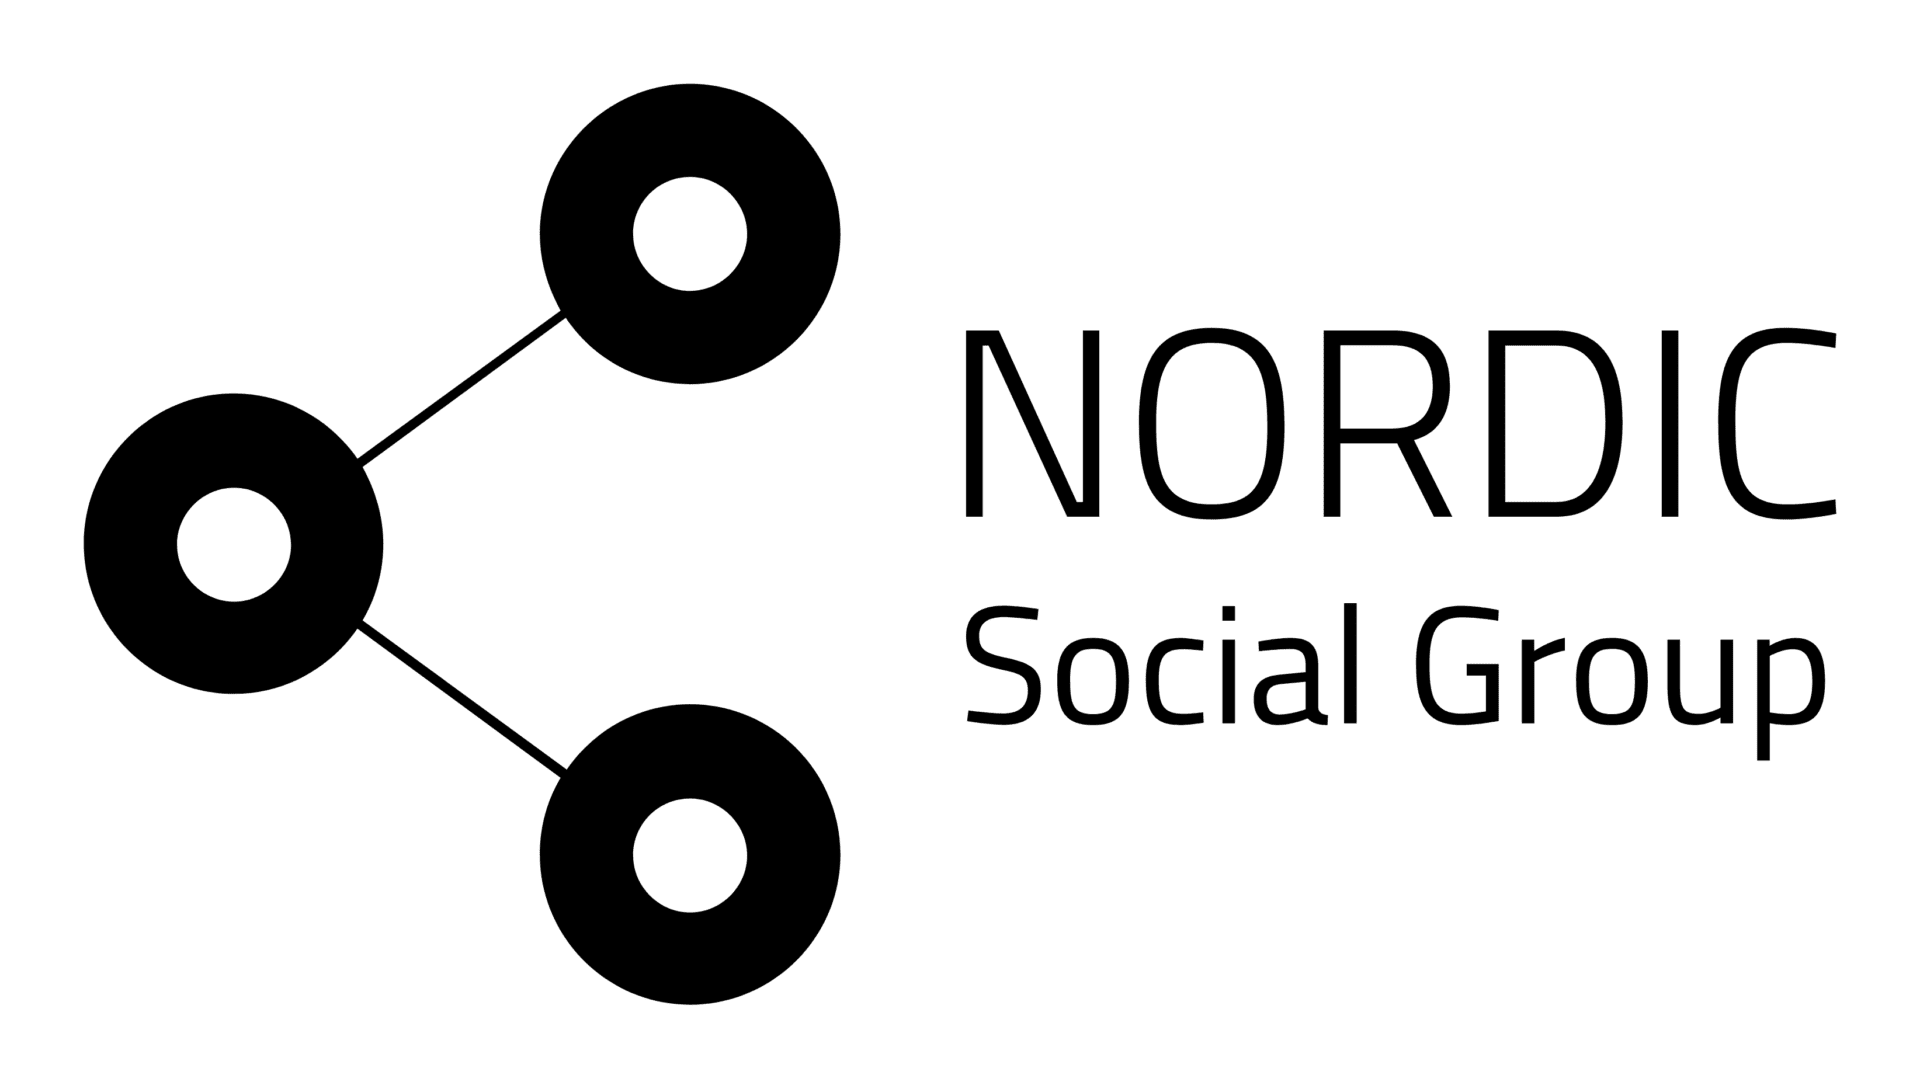 Nordic Social Group AS